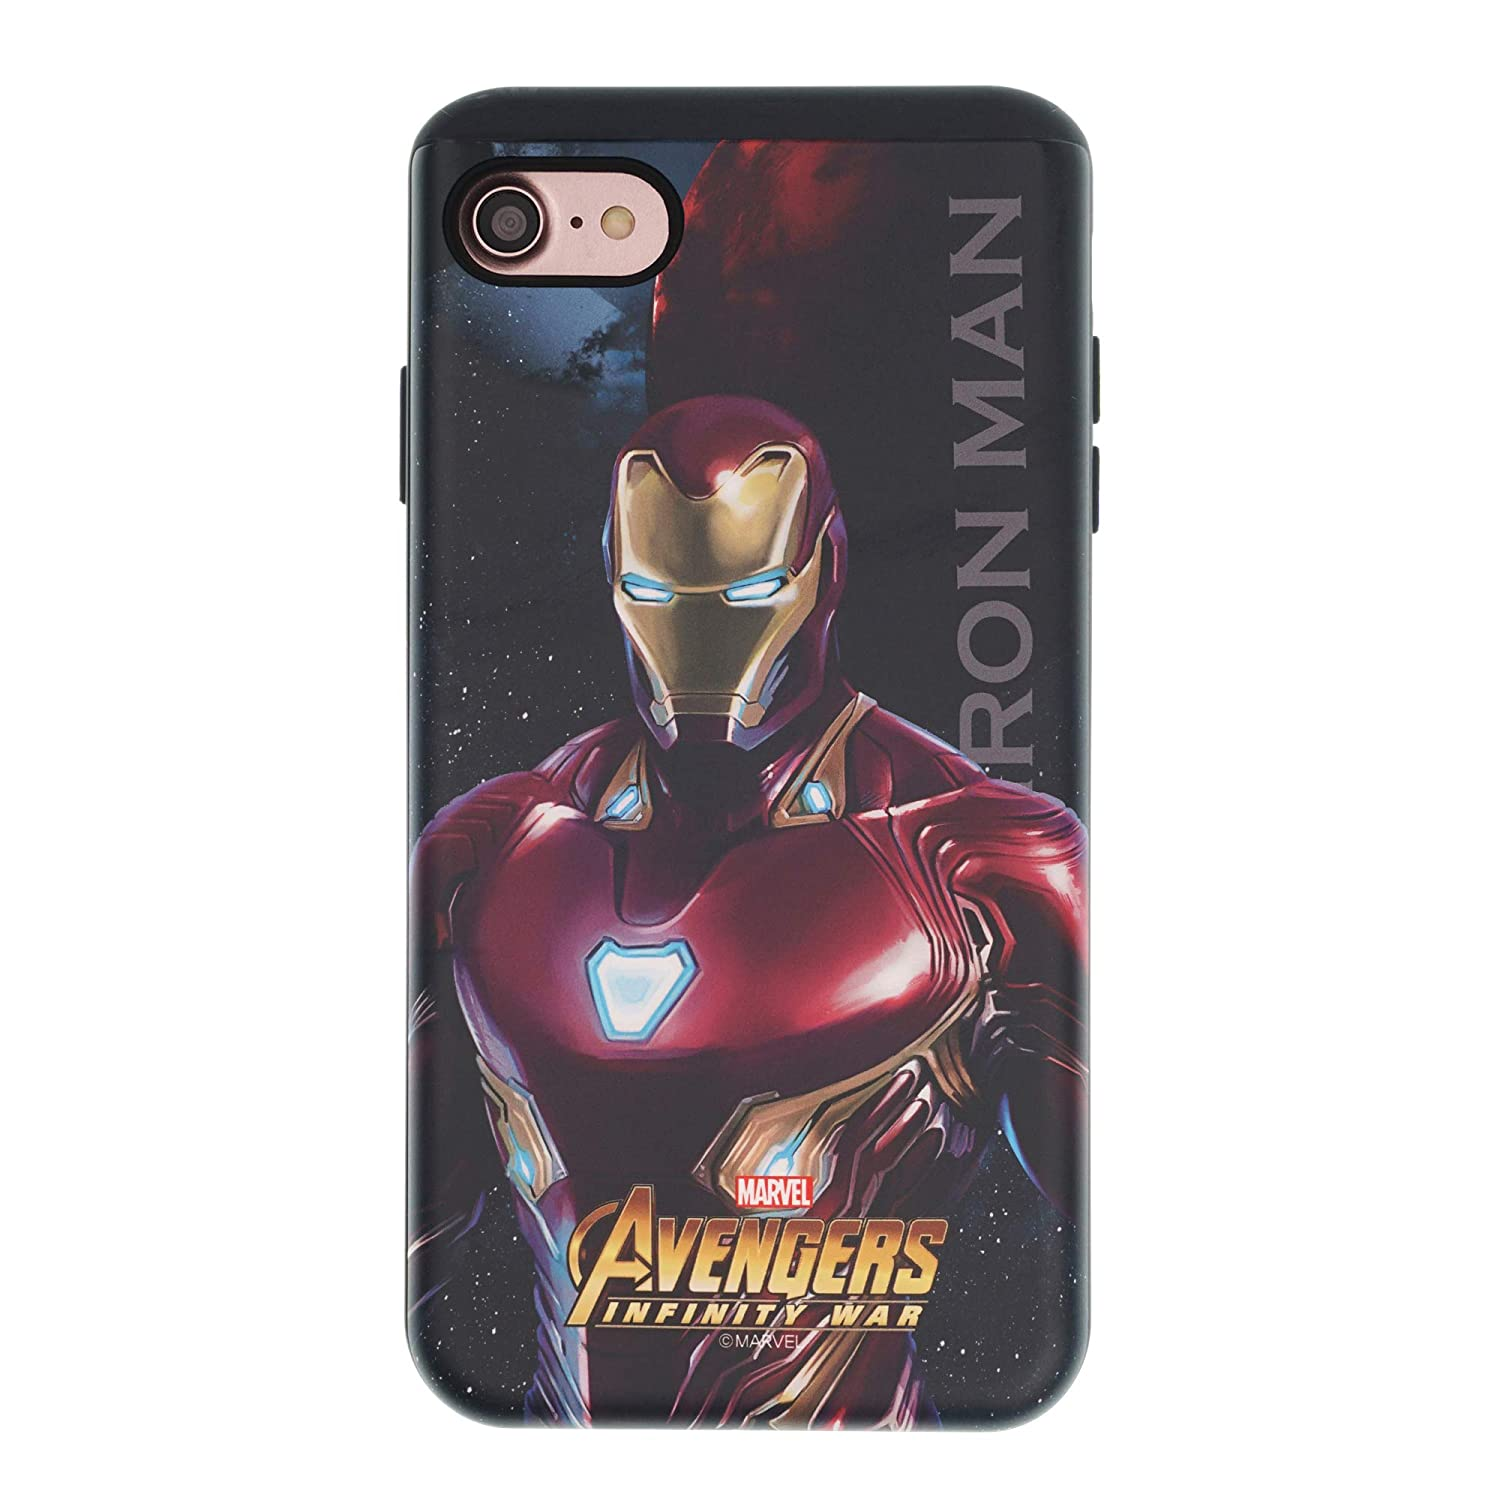 huge selection of 2ccf4 a063f iPhone 8 Plus/iPhone 7 Plus Case Marvel Avengers Infinity War Layered  Hybrid [TPU + PC] Shock Absorption Bumper Cover for [ iPhone 8 Plus/iPhone  7 ...